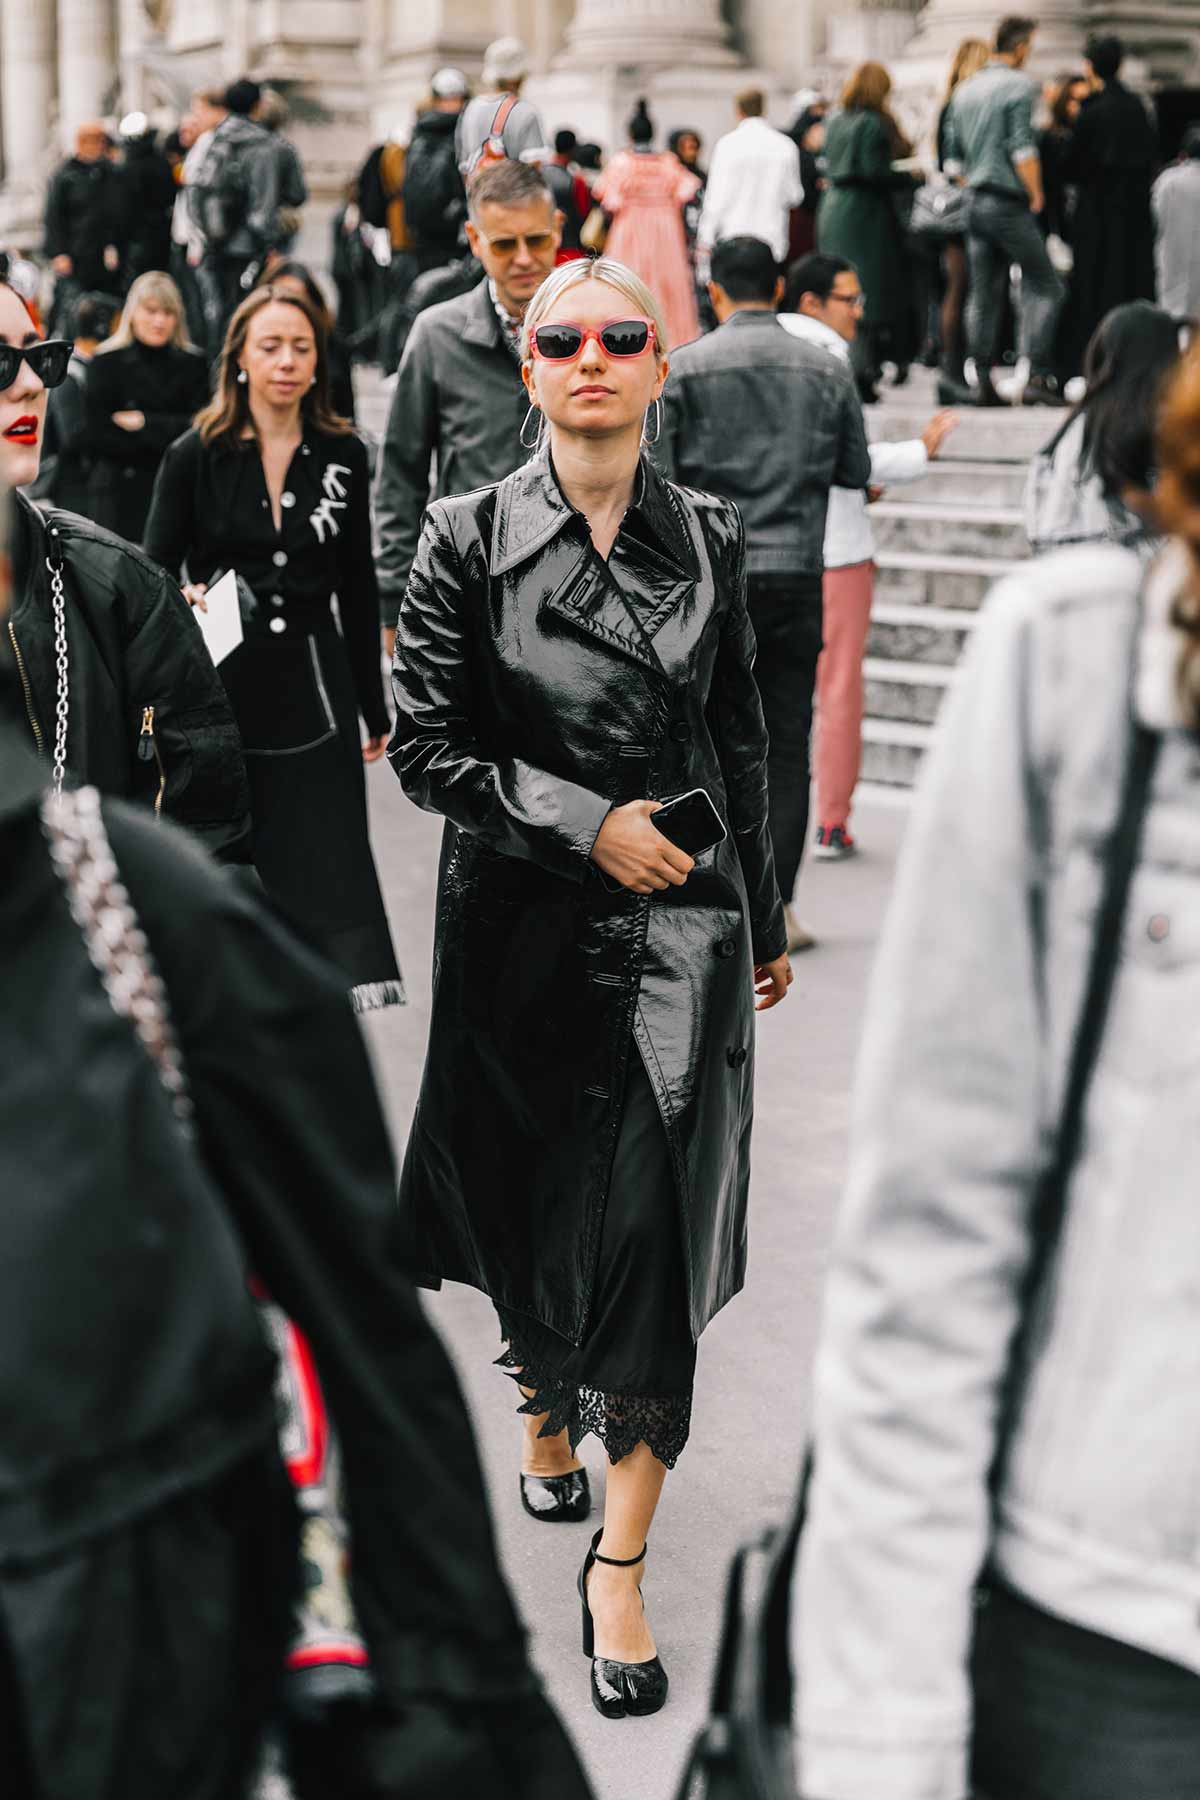 v.street_style_paris_fashion_week_dia_2_maison_margiela_dries_van_noten_501697145_1200x1800